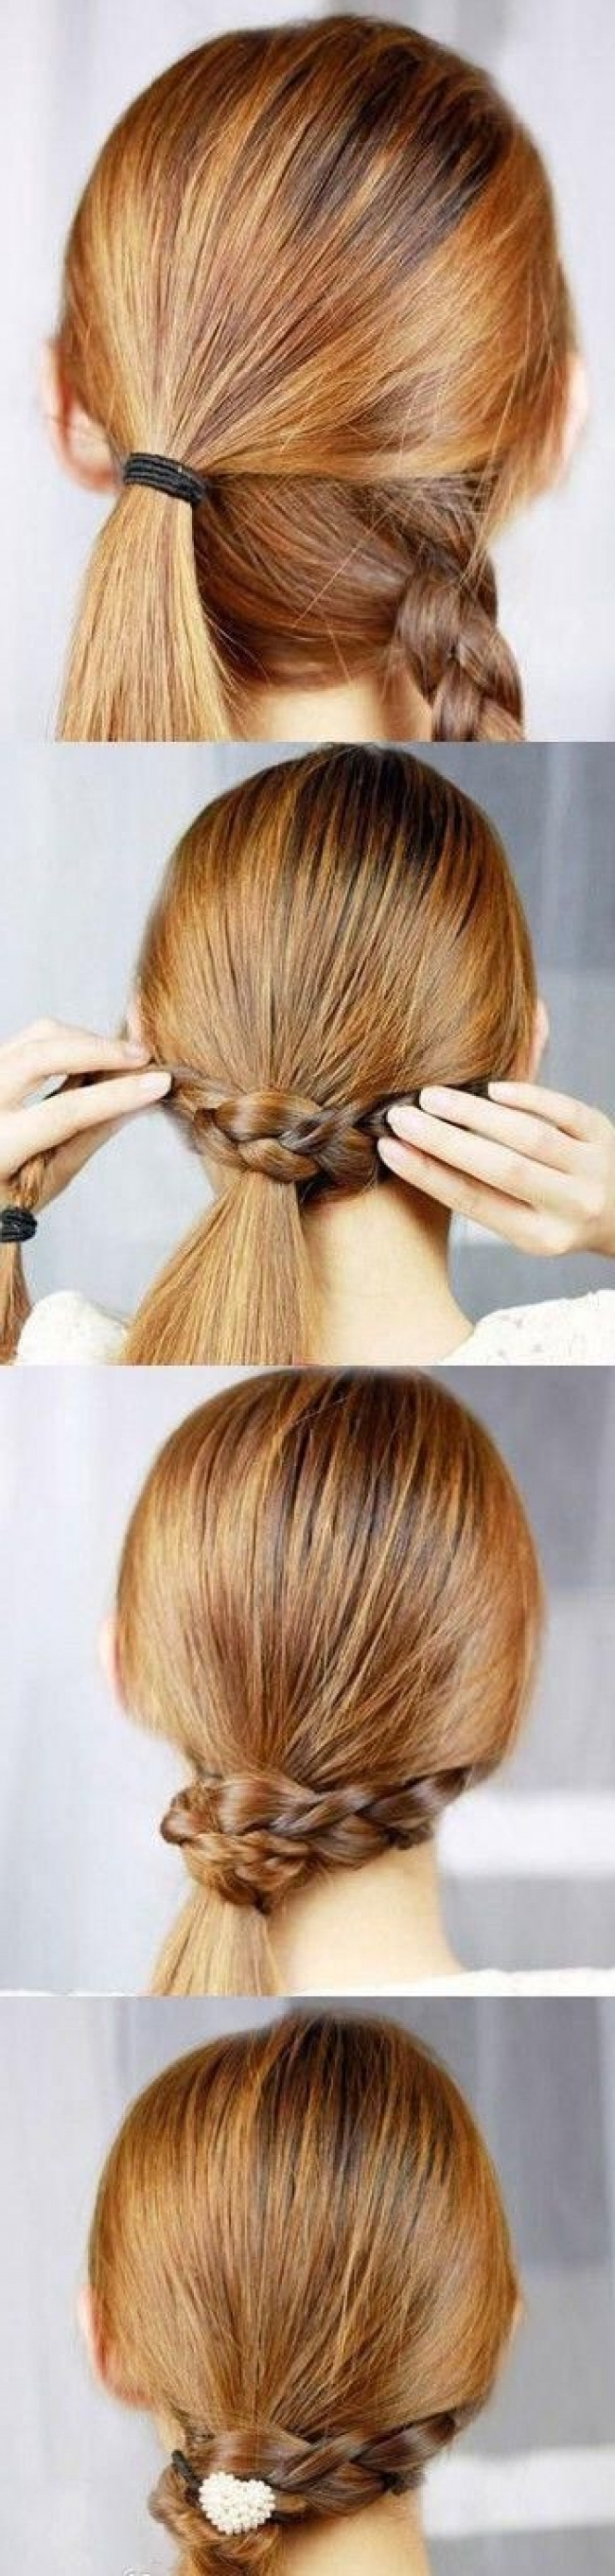 Artistically Undone Braid French Braid Ponytails 2018 Throughout Well Liked Artistically Undone Braid Hairstyles (Gallery 1 of 15)